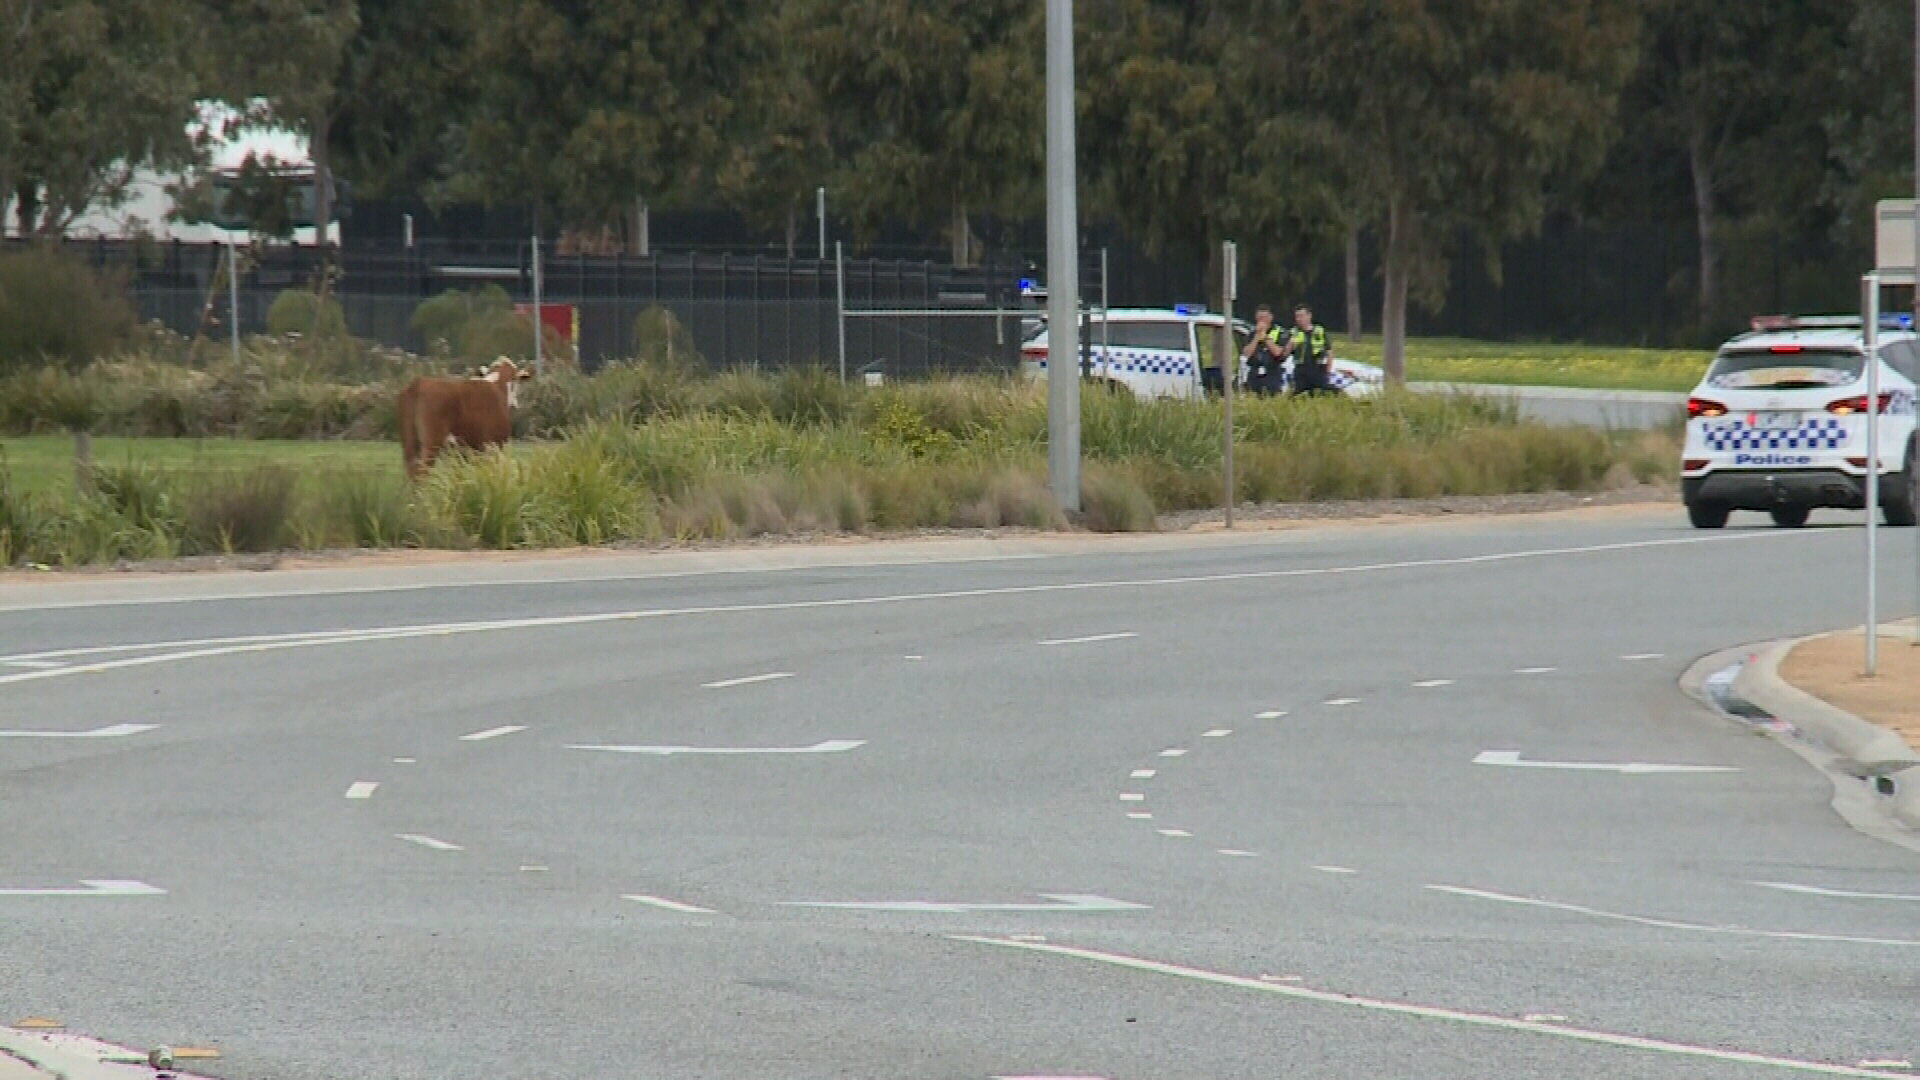 Cow shot in industrial area after escaping from Melbourne property